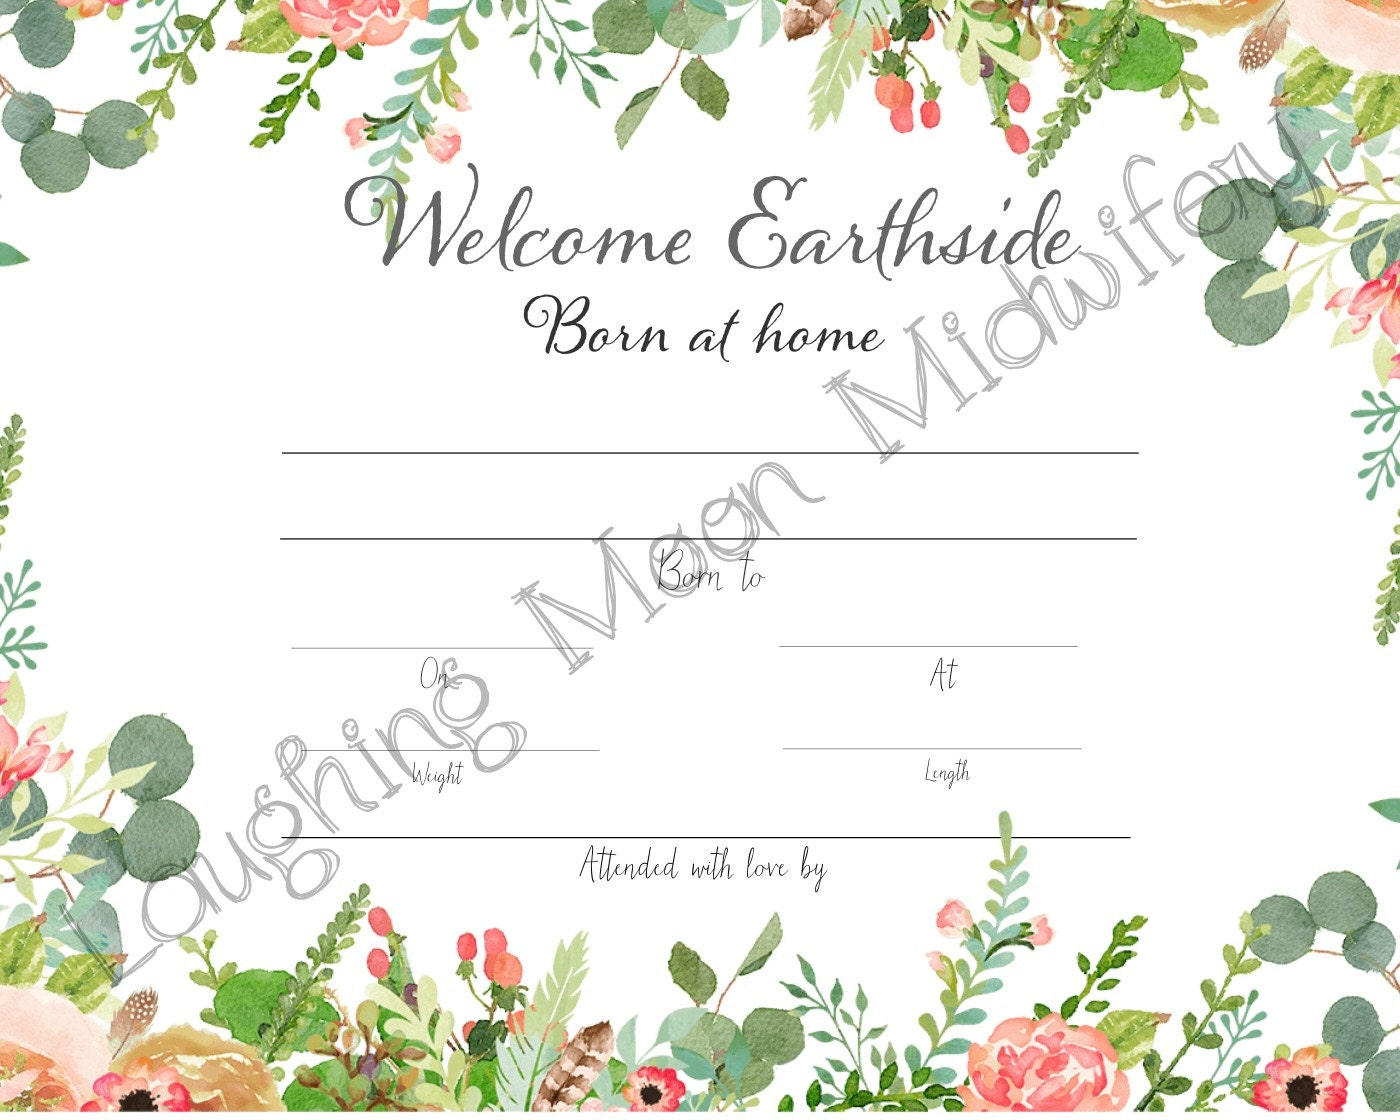 Commemorative birth certificate welcome earthside born at zoom aiddatafo Choice Image